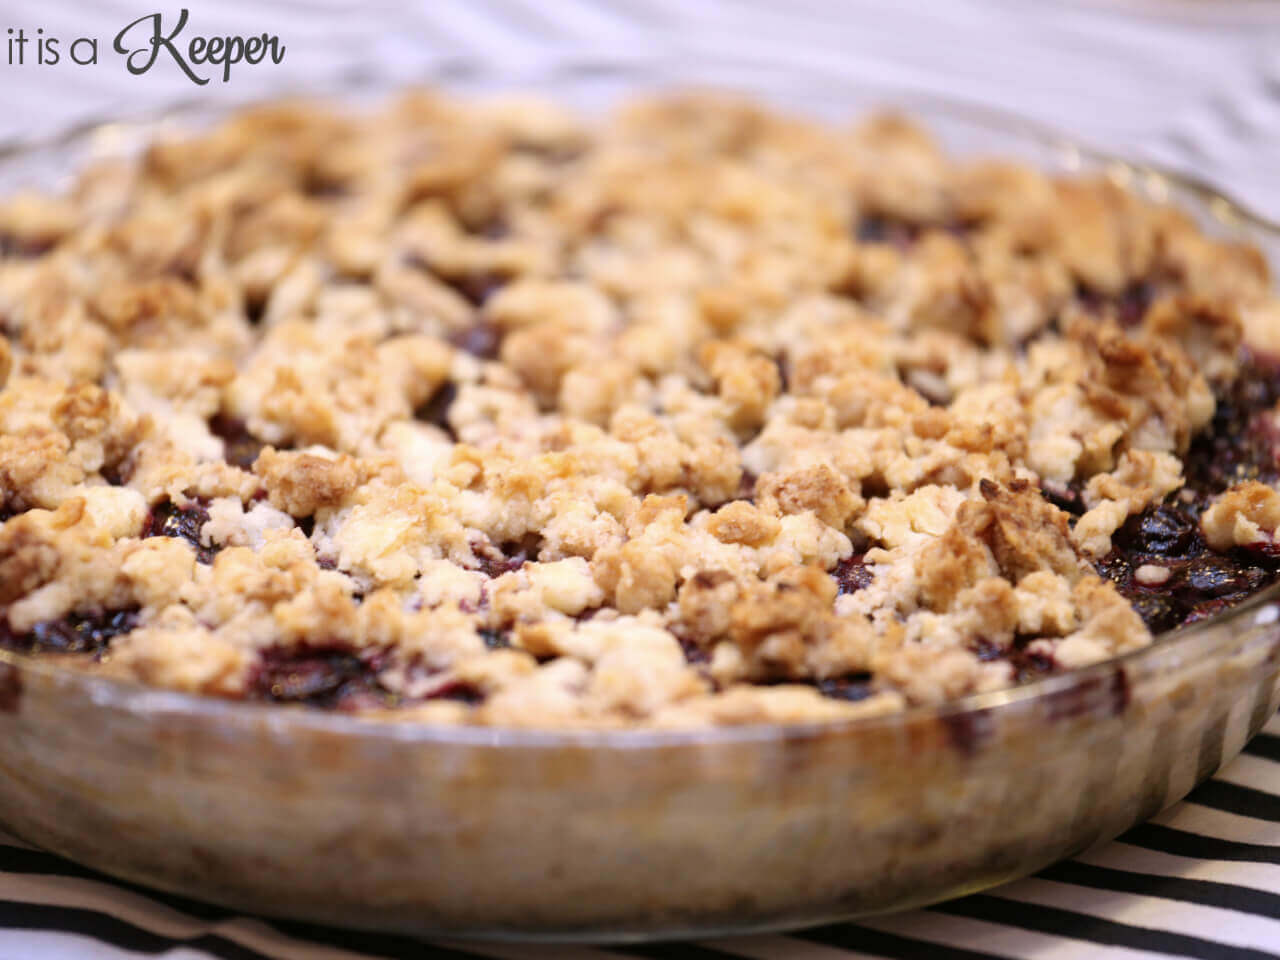 Easy Blueberry Crumb Pie - this easy pie recipe doesn't use a traditional pastry crust and is super easy to make